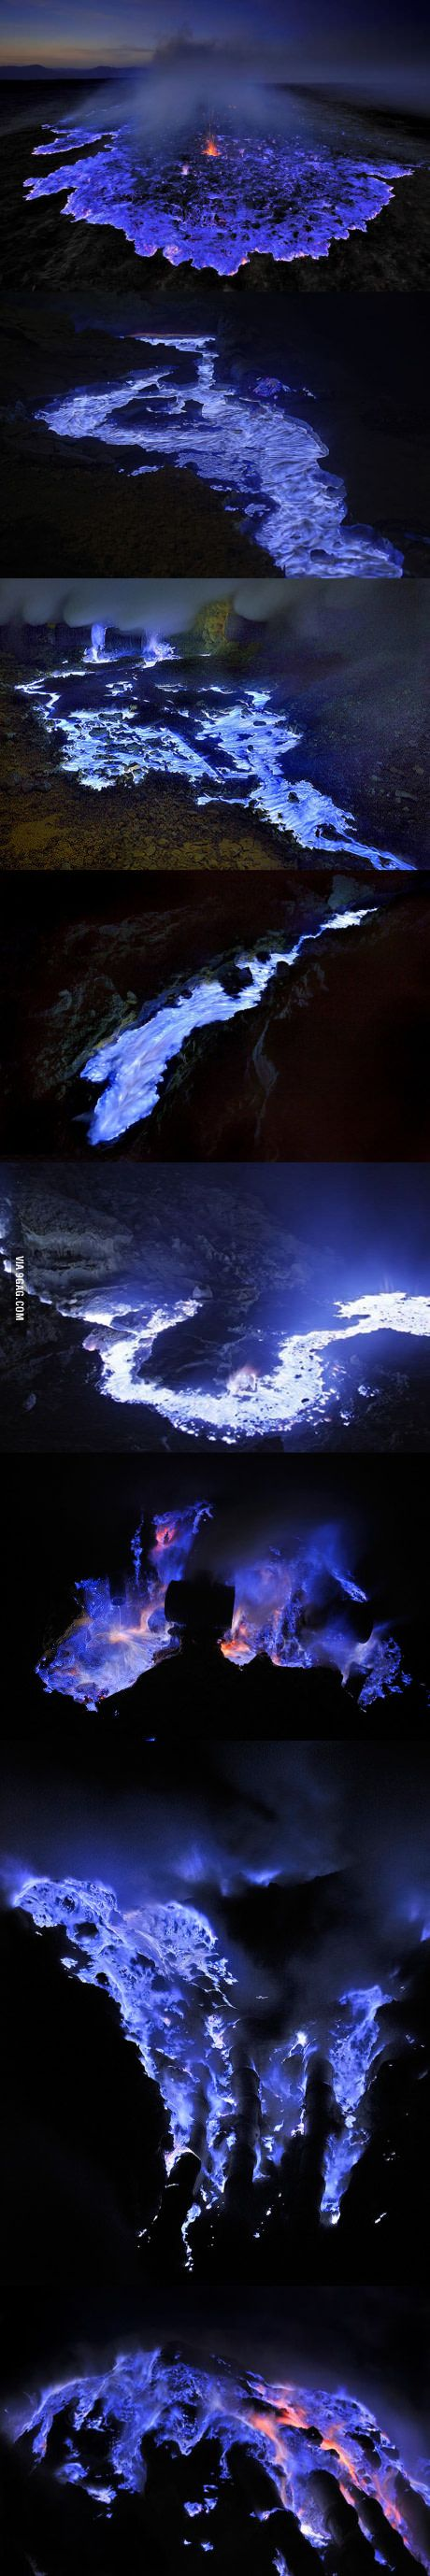 Blue Lava, Ijen Crater - Indonesia